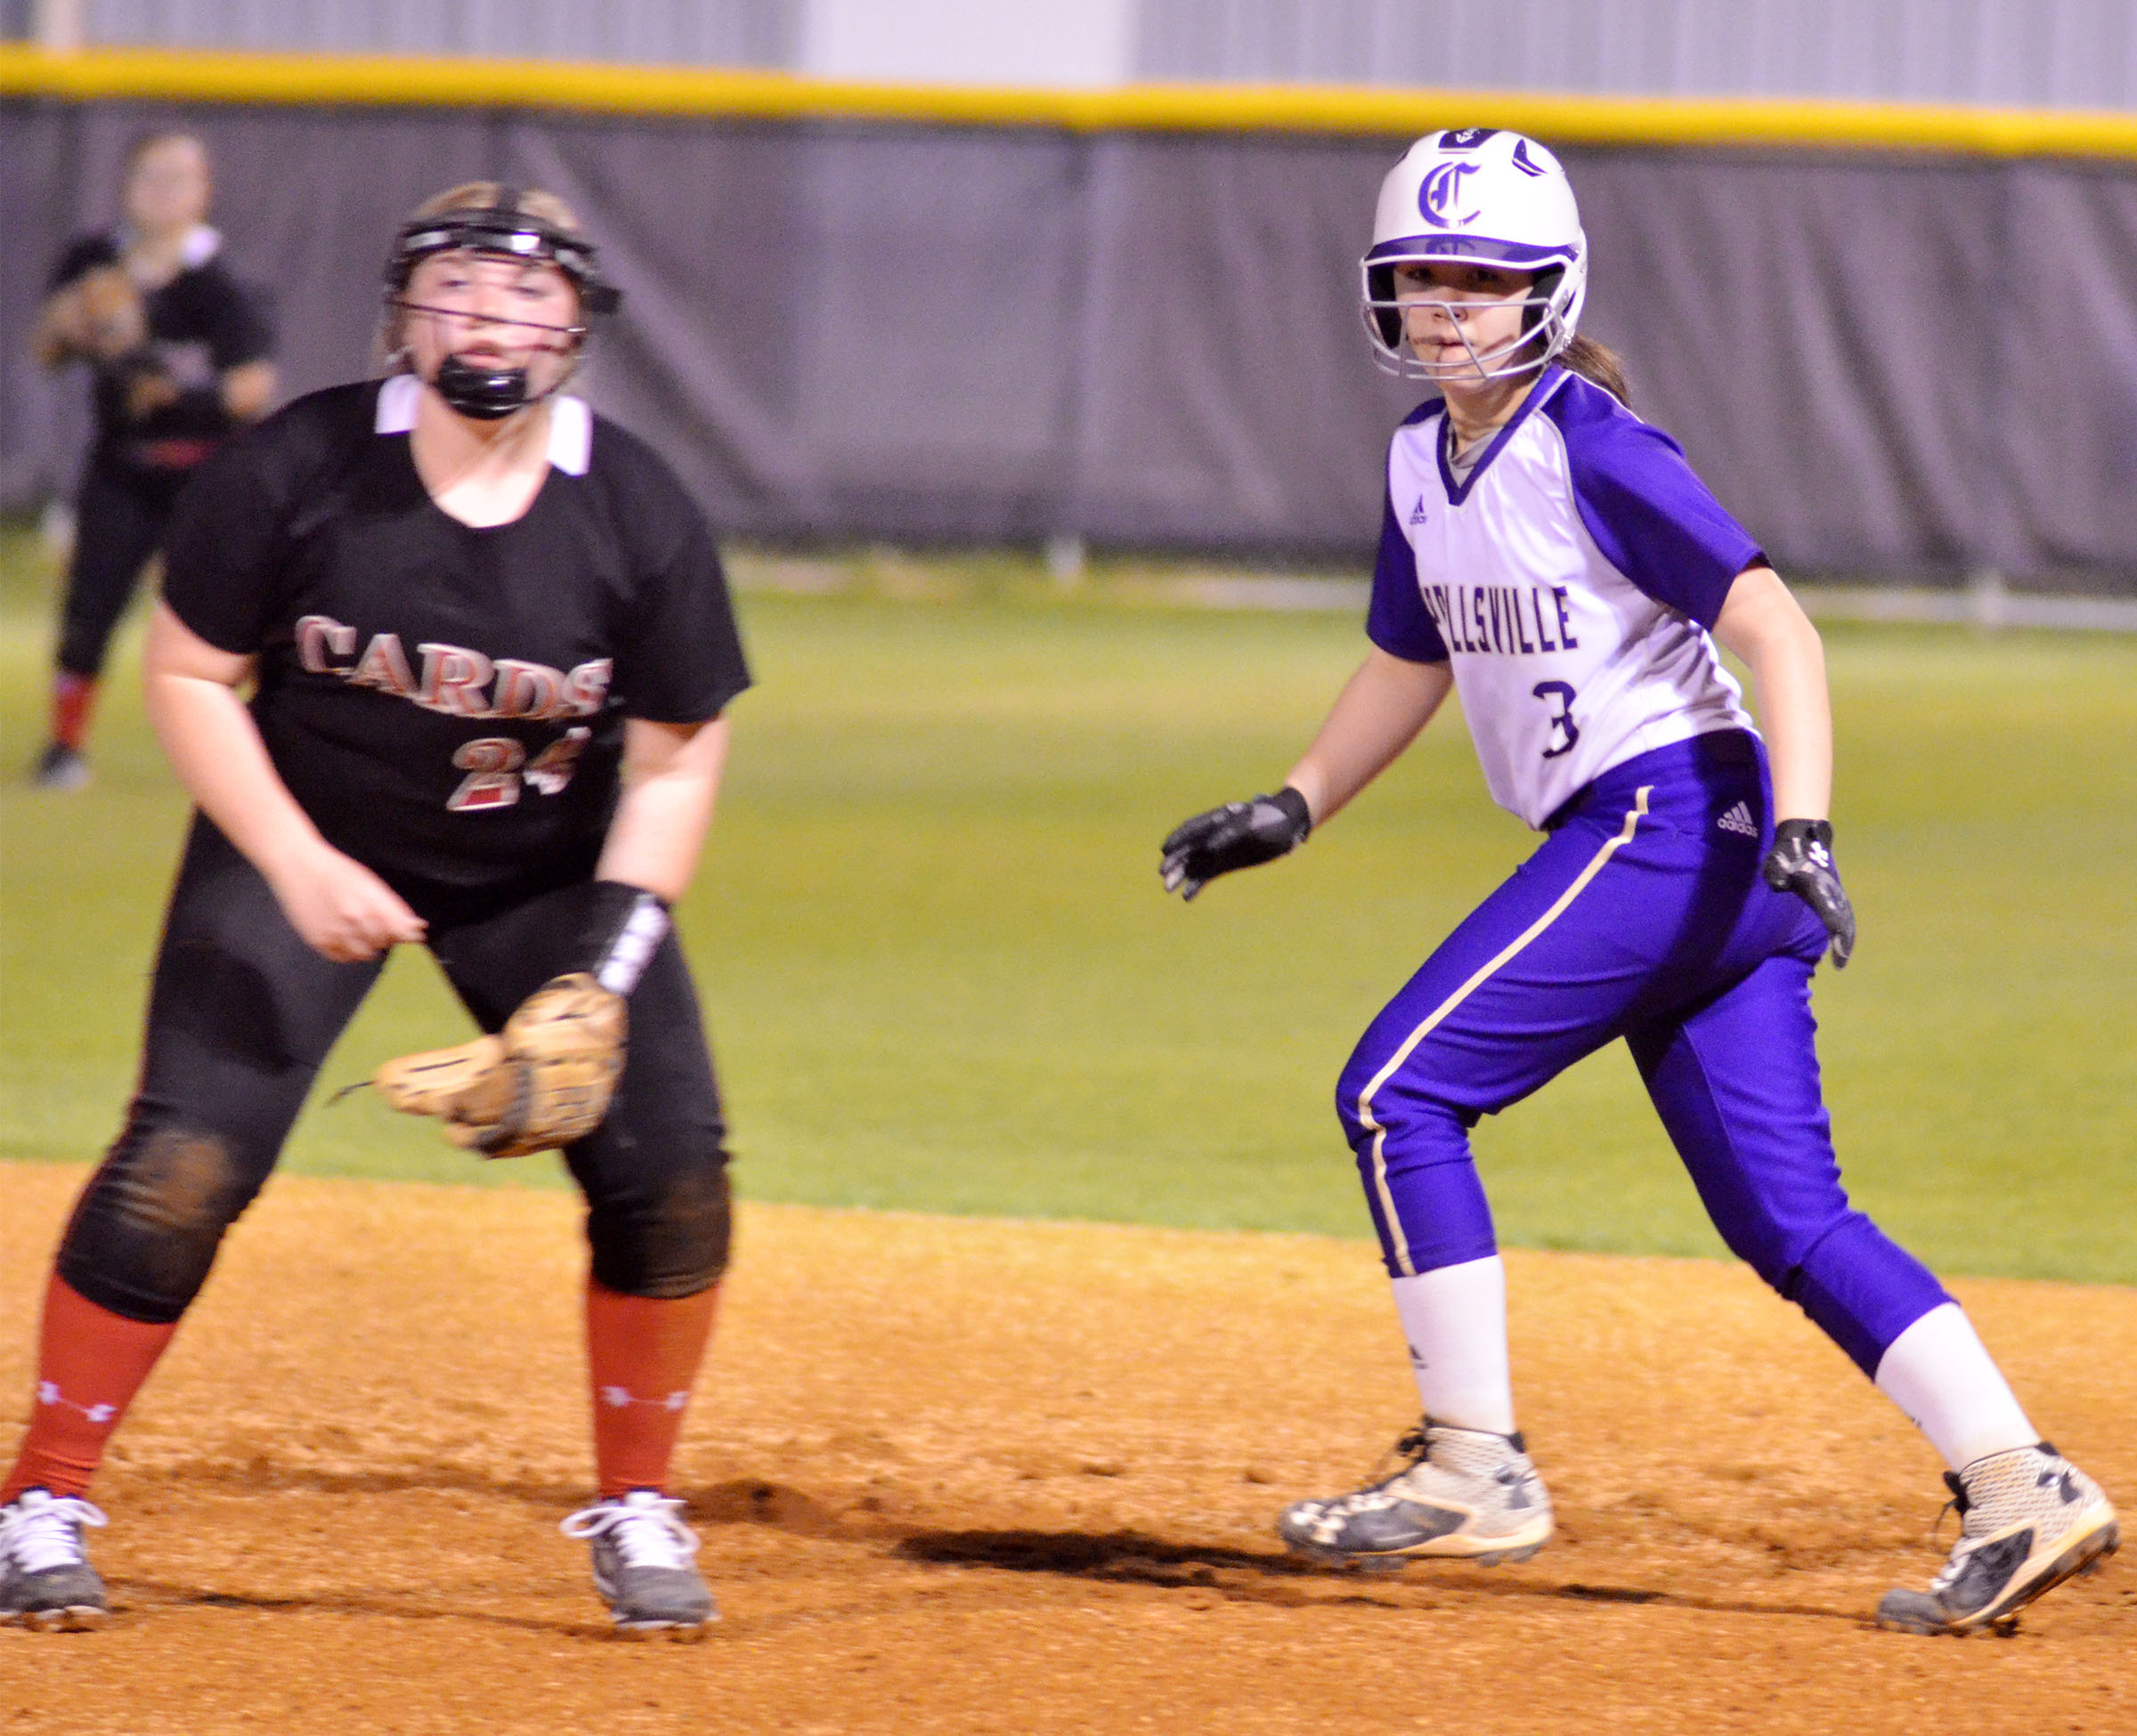 Campbellsville Middle School seventh-grader Olivia Fields looks to go to second.